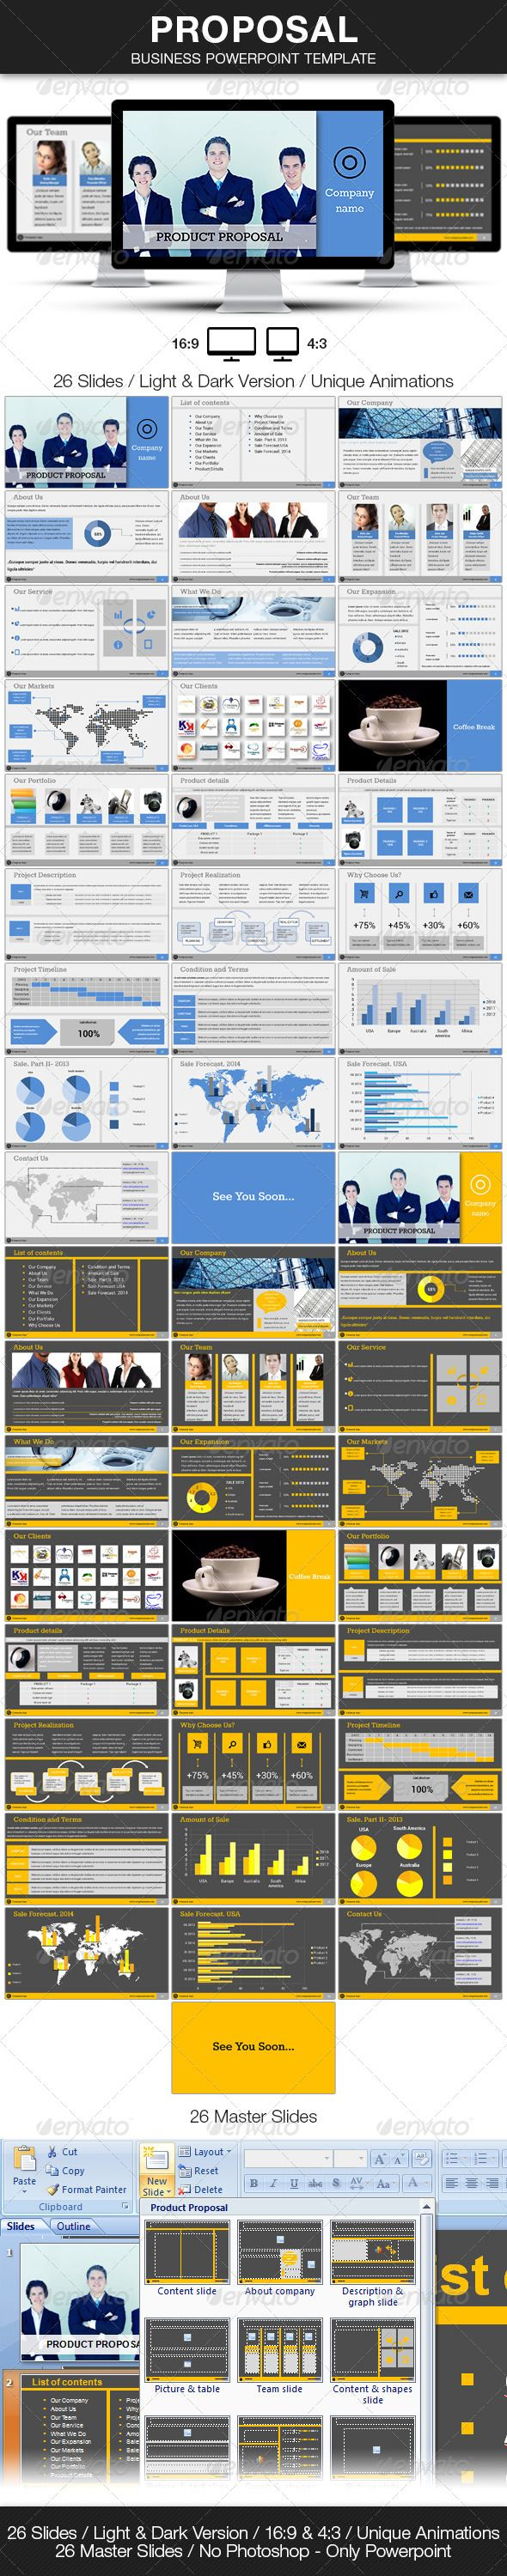 Proposal - Business Powerpoint Template - Presentation Templates